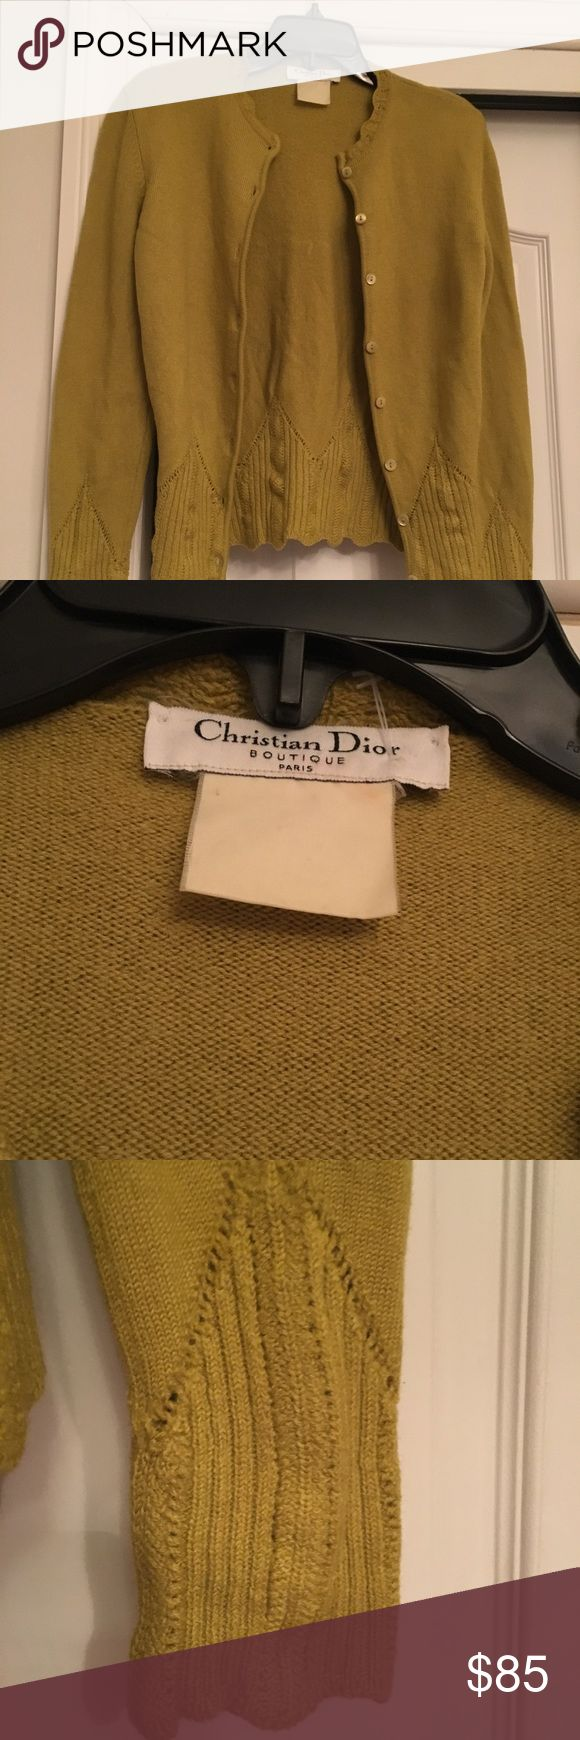 Vintage Christian Dior In great condition old tag so it's faded its most likely a small in a mustard color beautiful detail. ❤️❤️❤️ Christian Dior Sweaters Cardigans